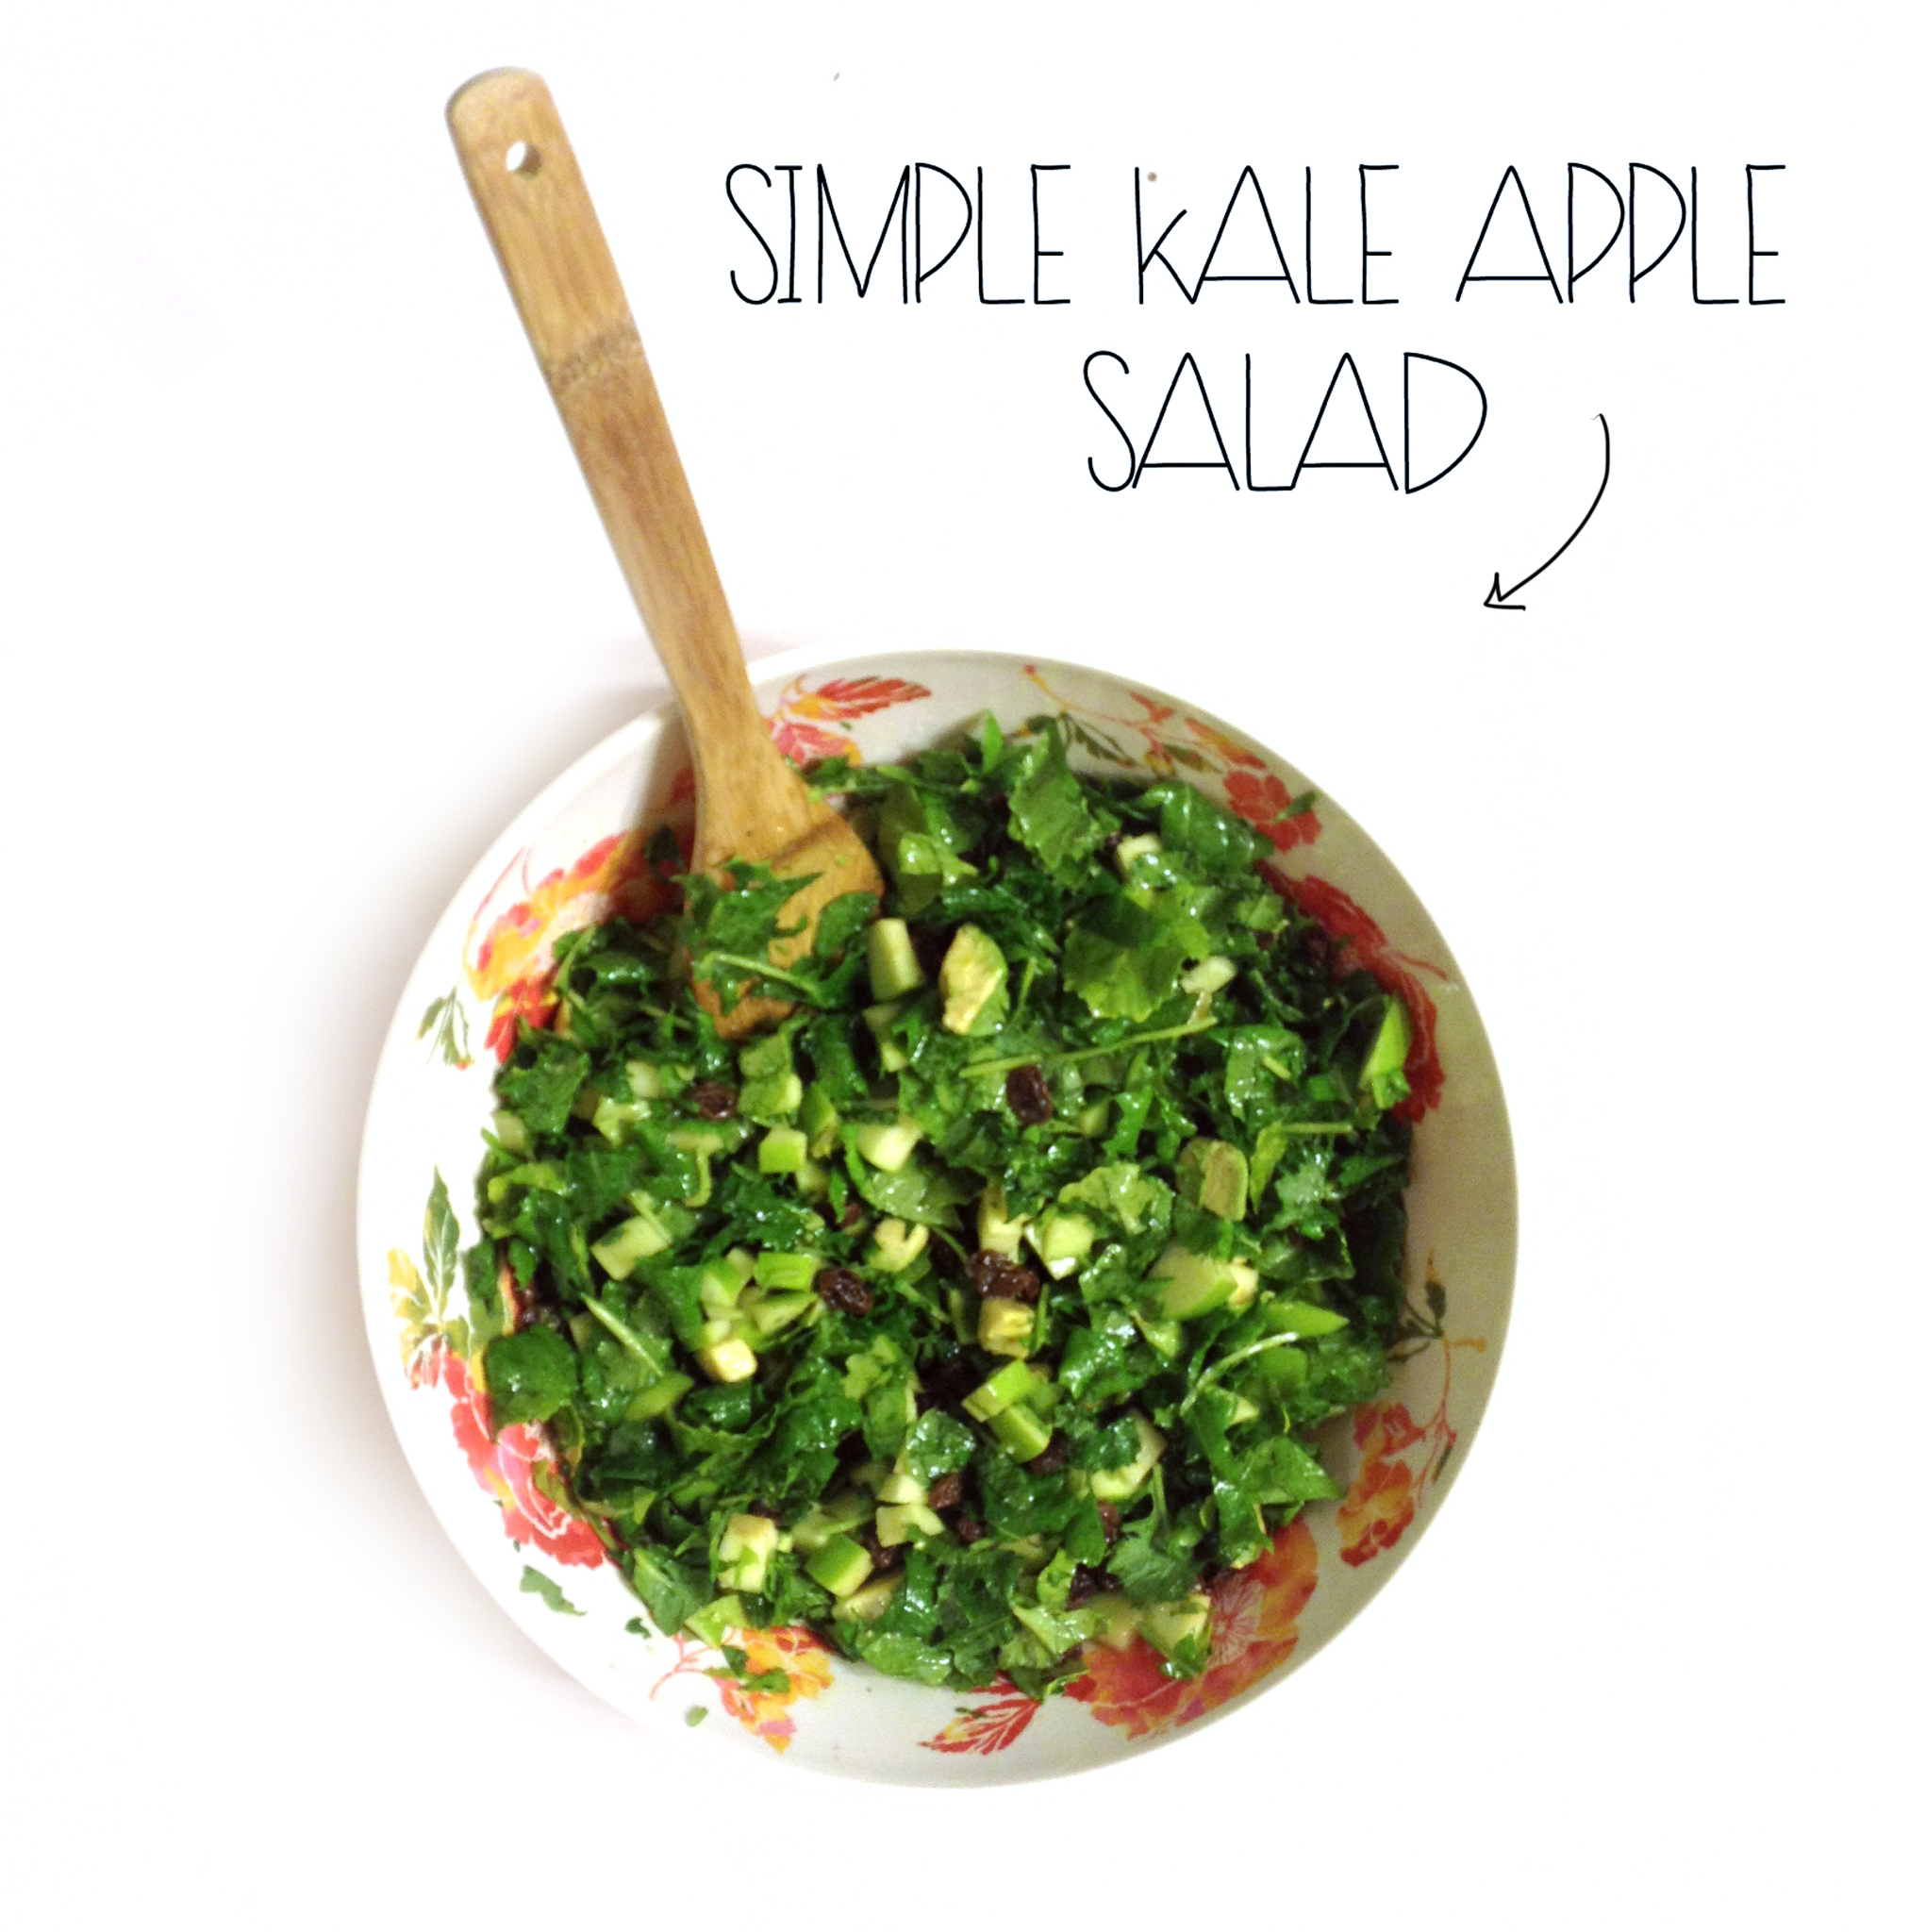 Simple Kale Apple Salad